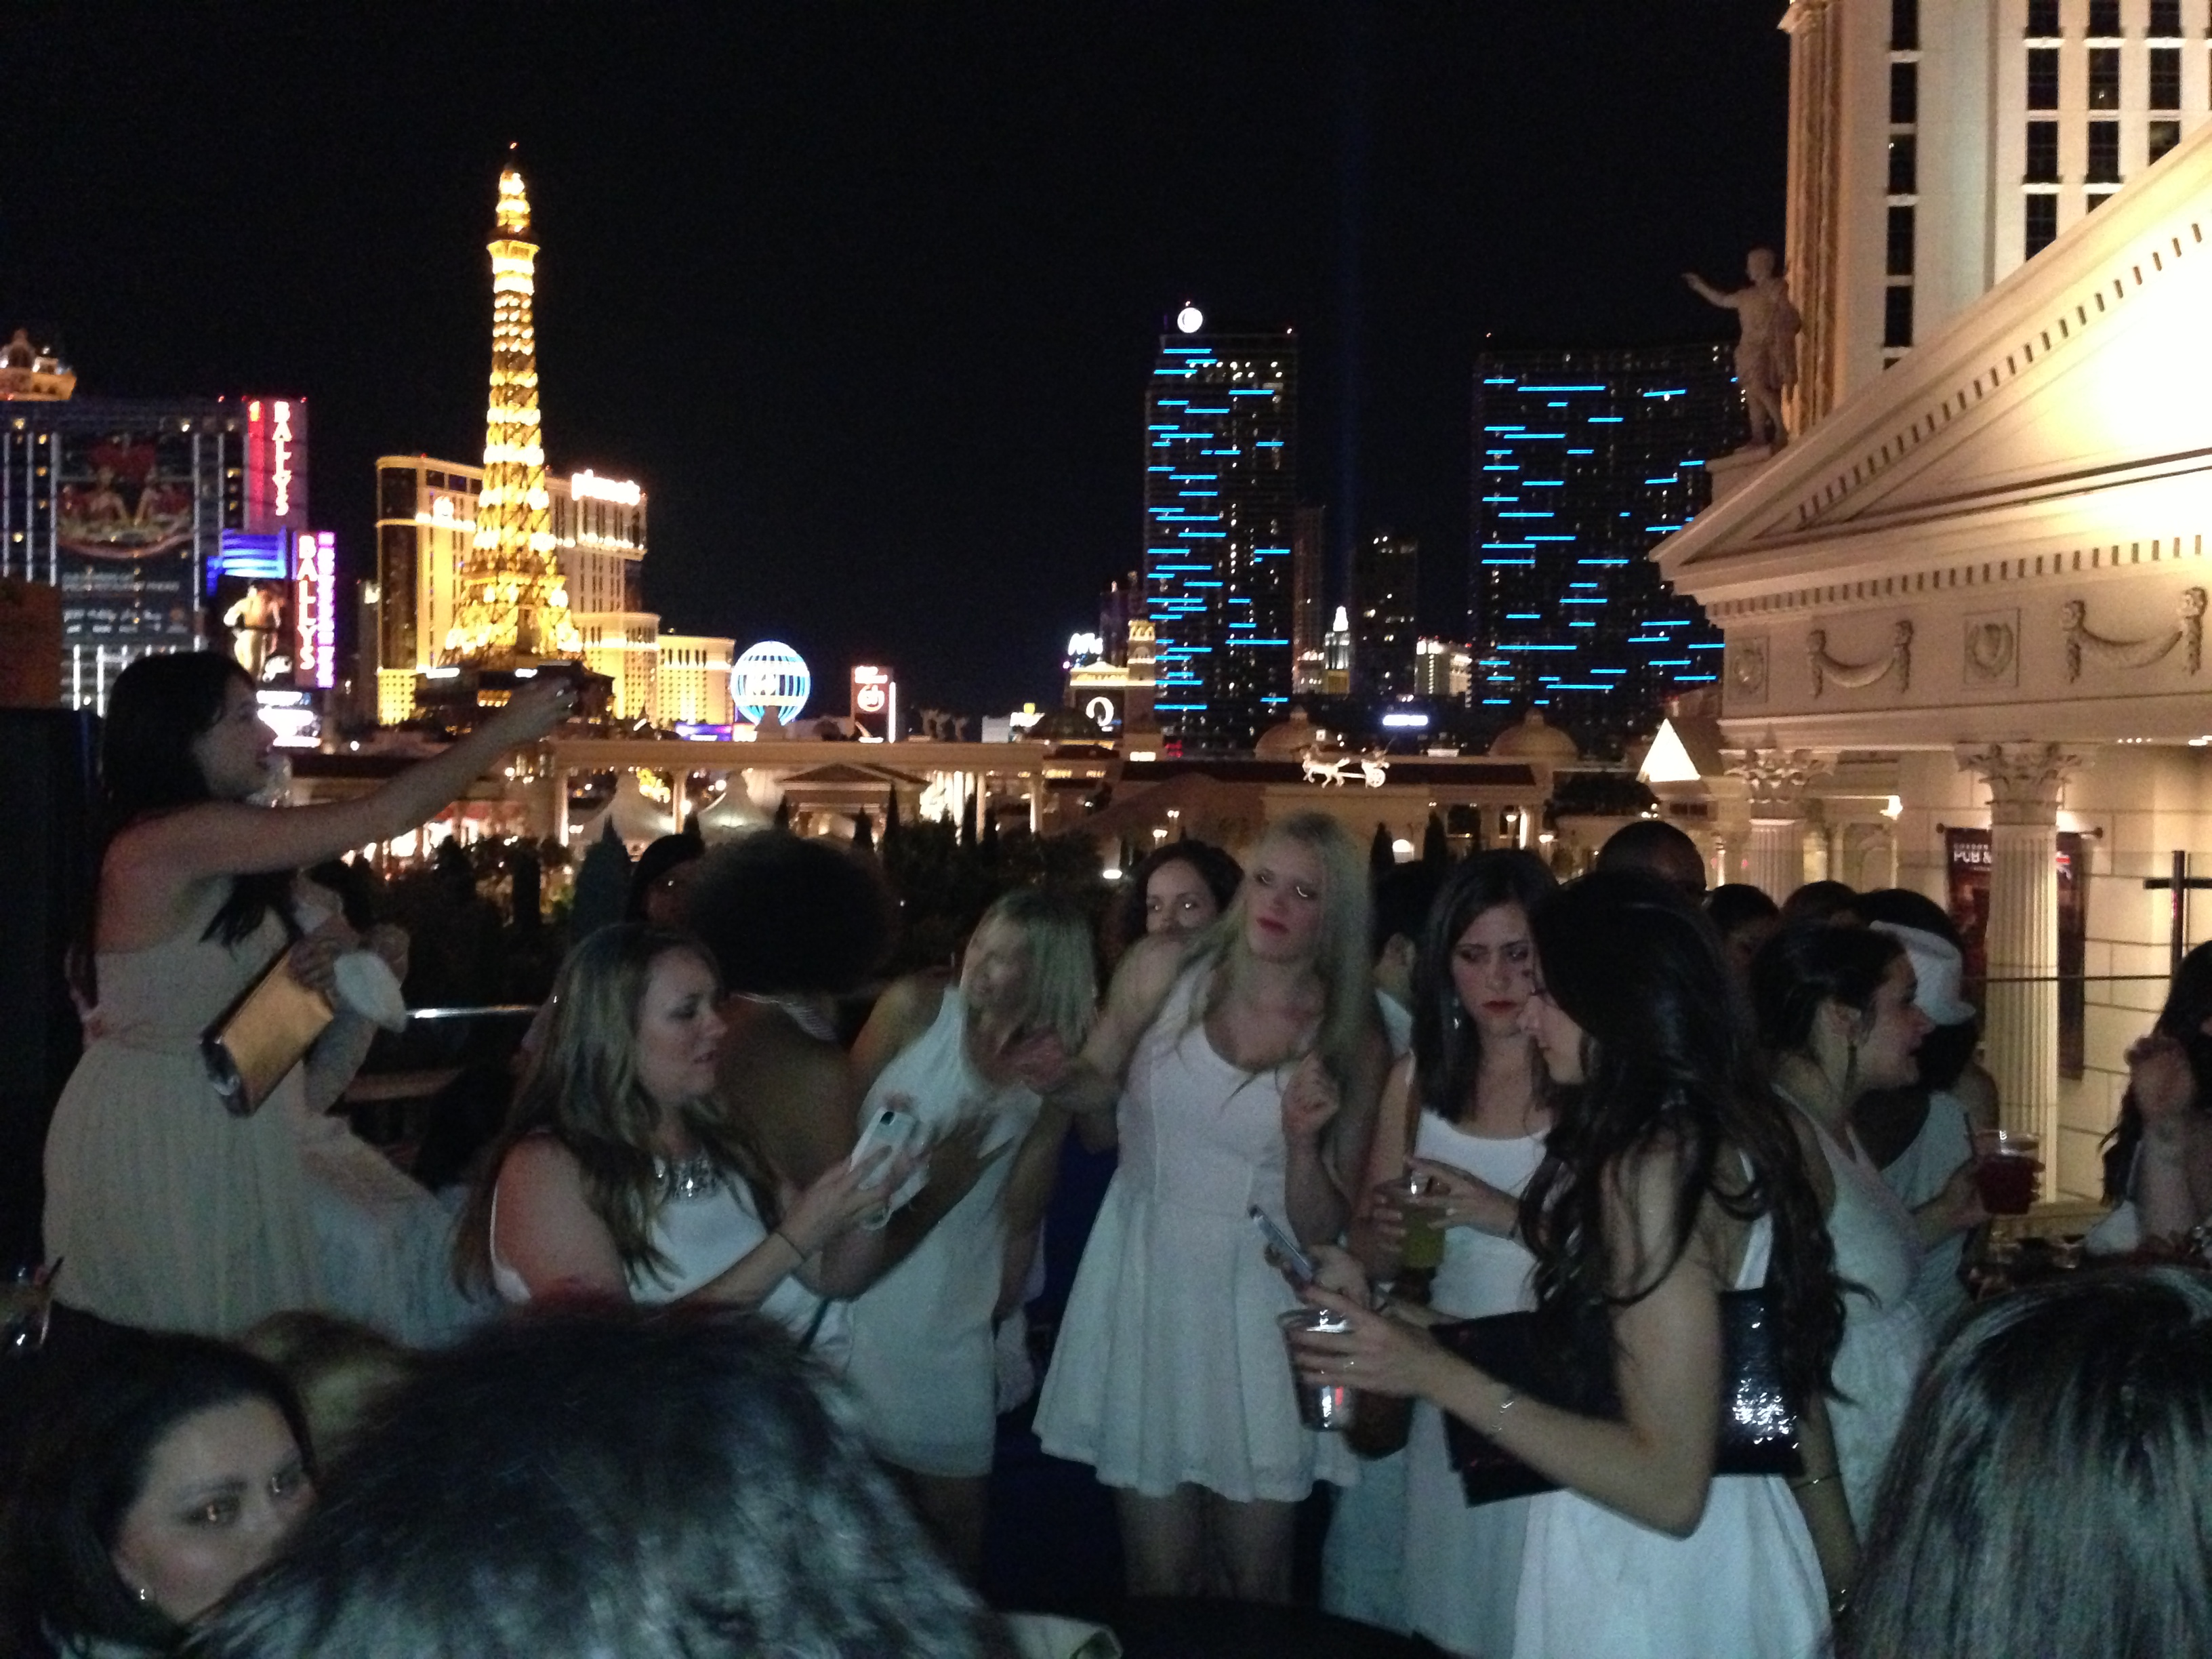 Rooftop view of white clad party people (us) and skyline.